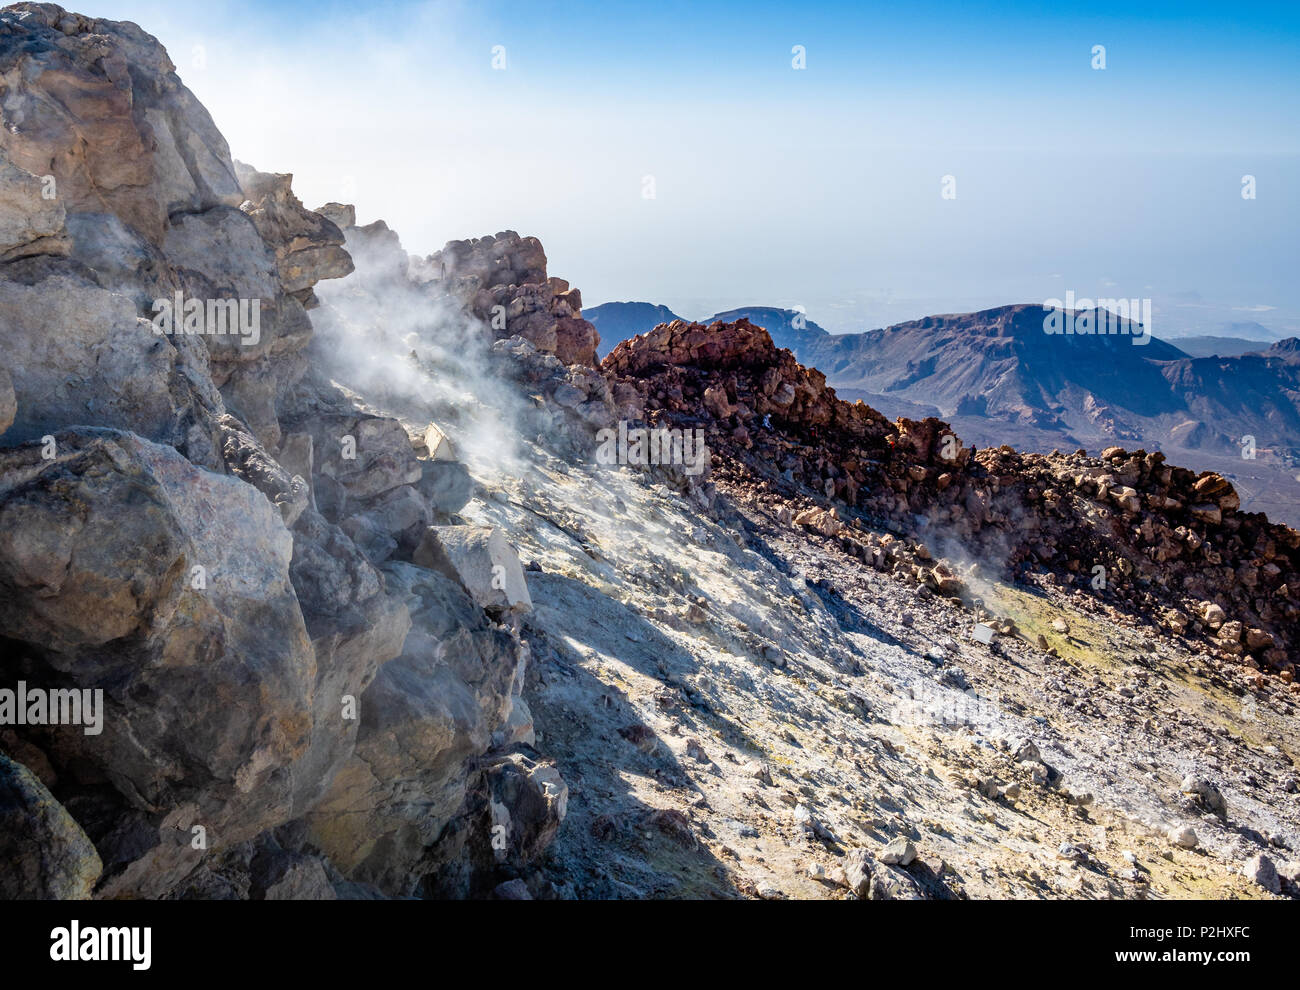 Smouldering summit crater of active volcano Mount Teide at 3718 metres on Tenerife the largest of the Canary Islands - Stock Image